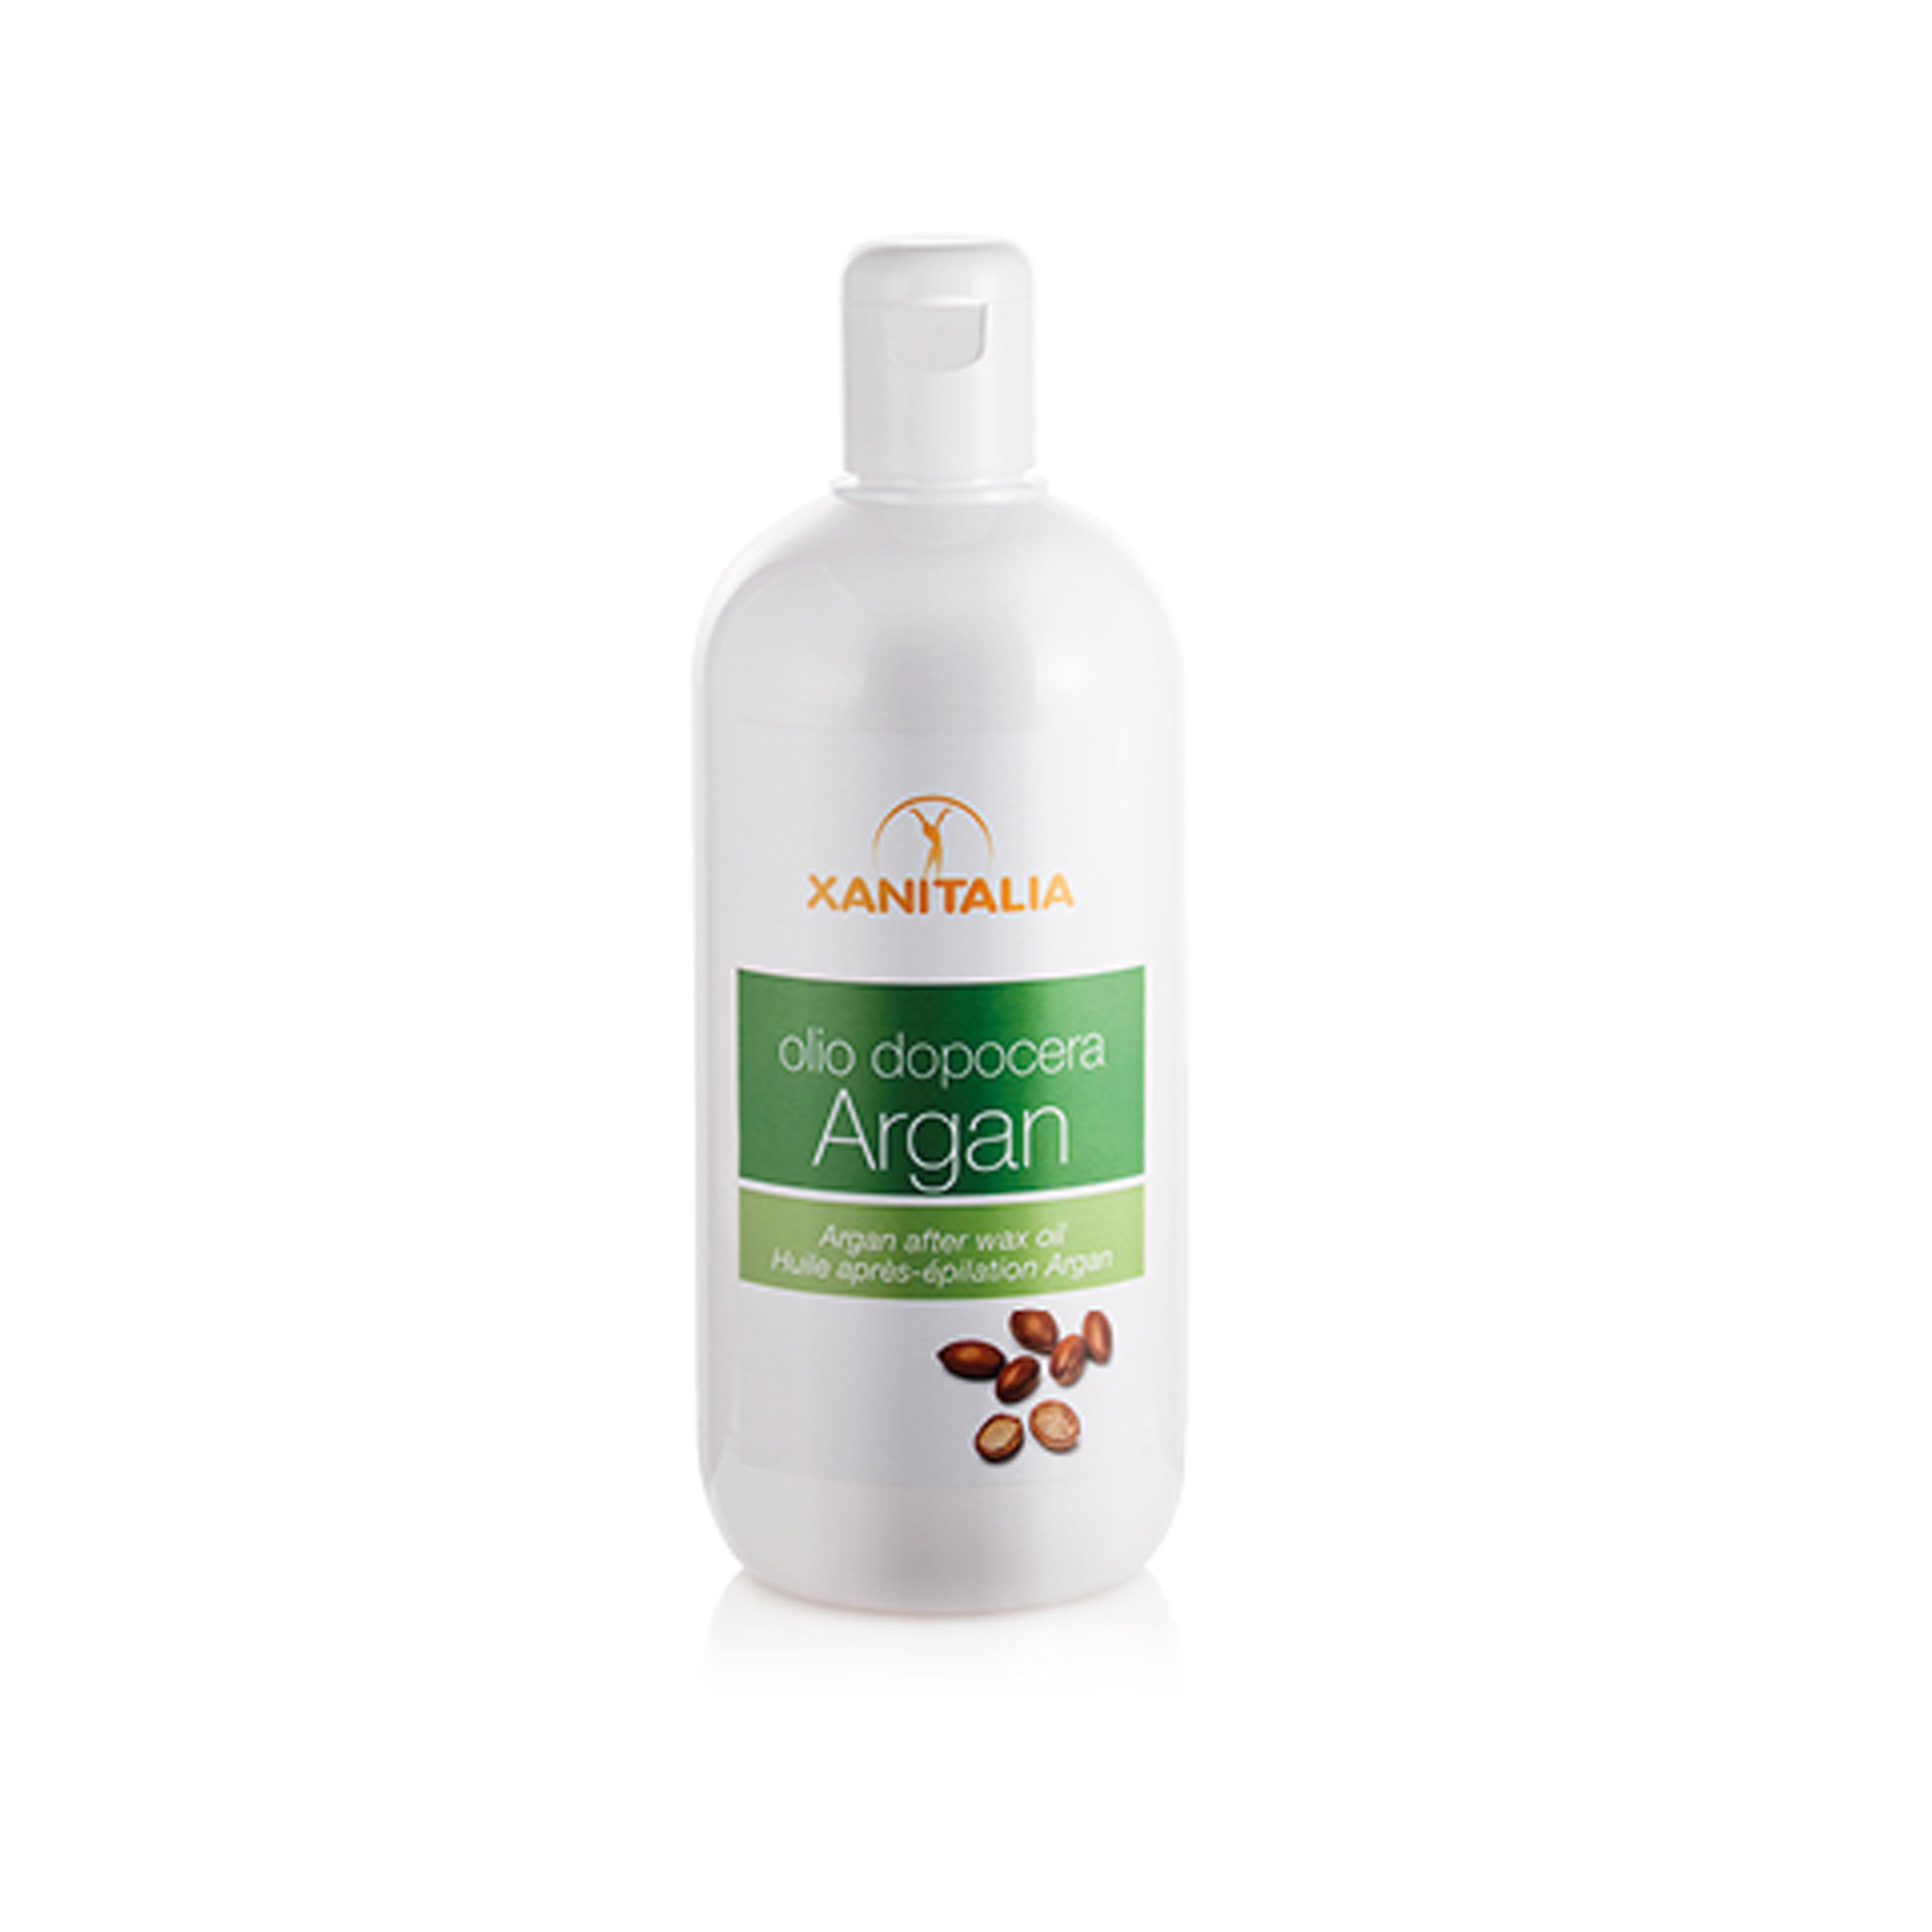 ARGAN OIL 500 ml